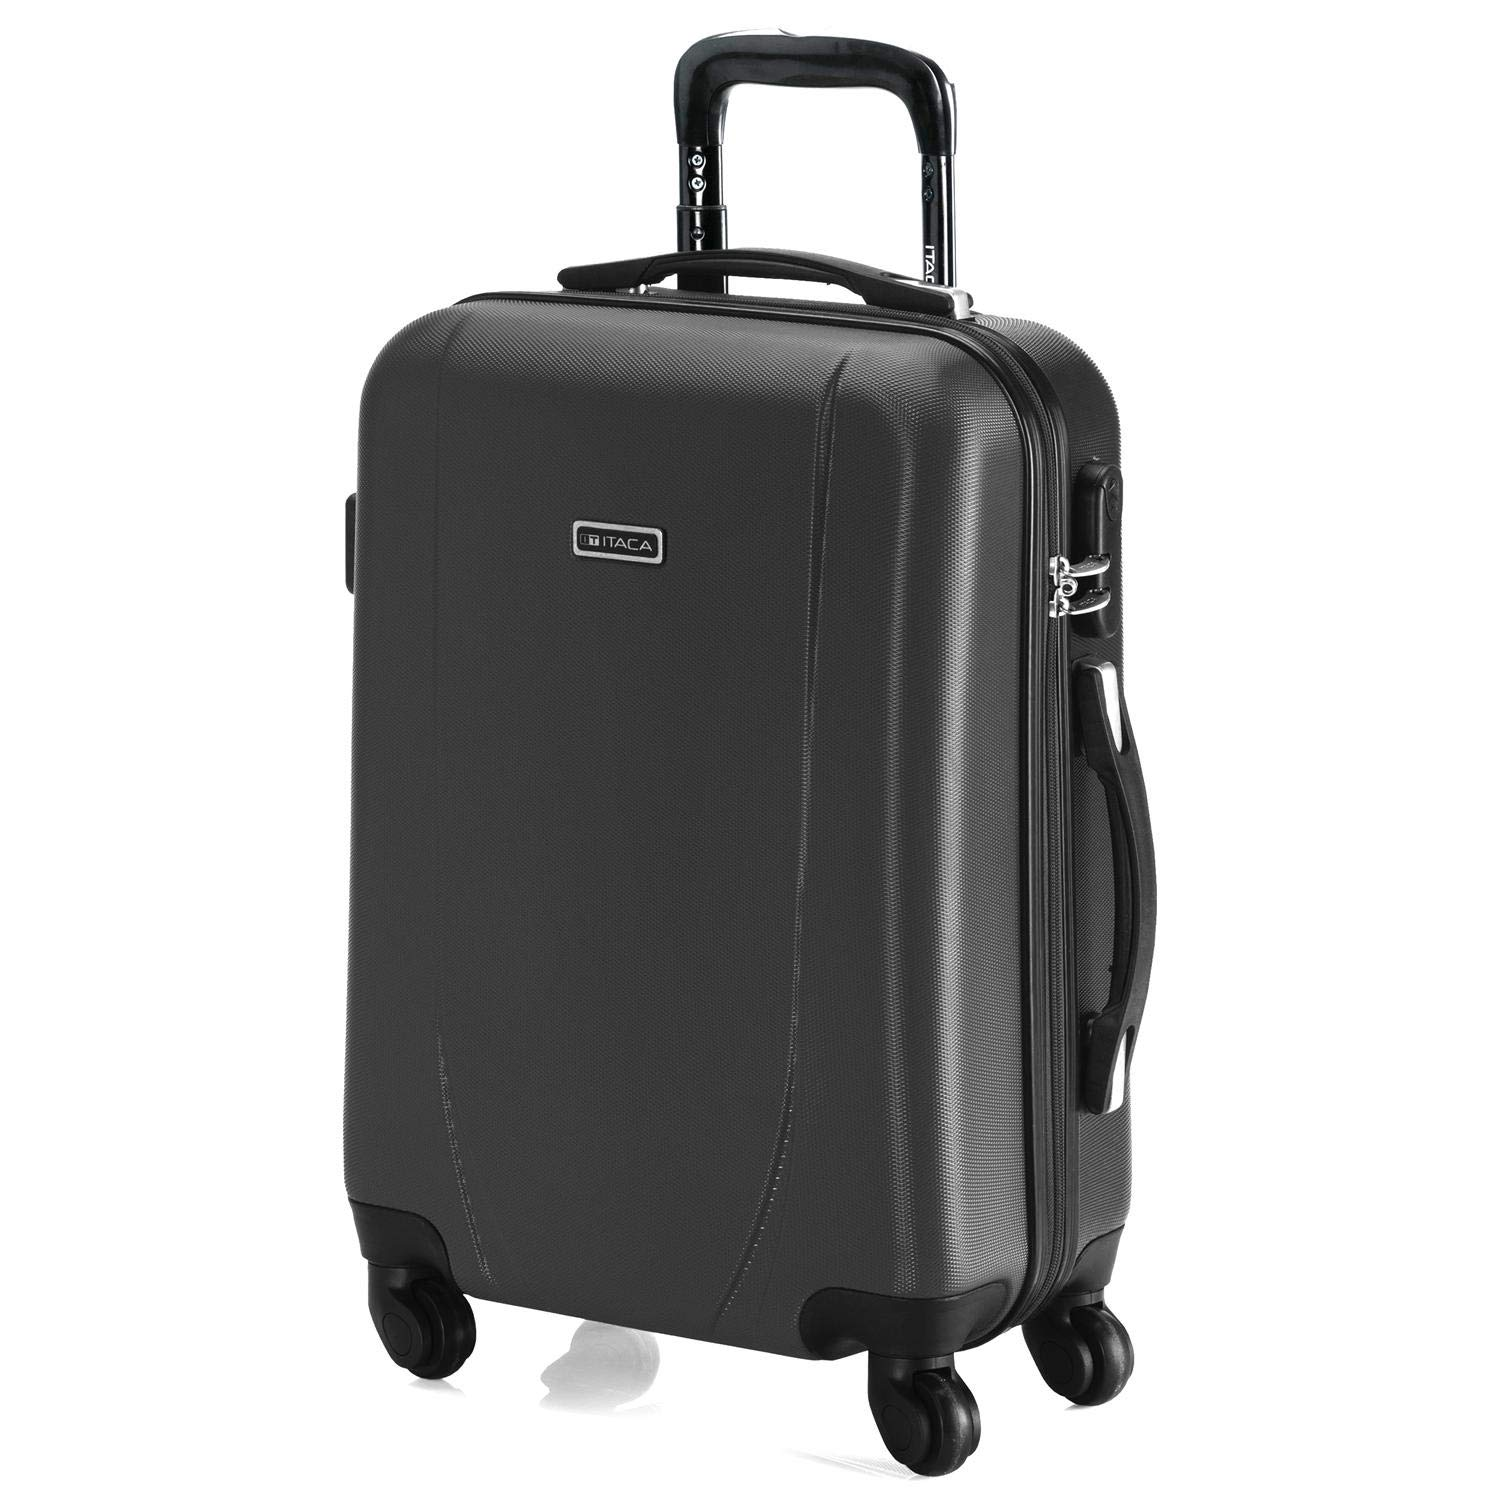 Poign/ée t/élescopique Robuste et l/ég/ère ITACA Rigide 71150 Valise Cabine Trolley 50 cm en ABS Bagage /à Main 2 anses 4 Roues Id/éal Low Cost Ryanair Vueling Color Anthracite